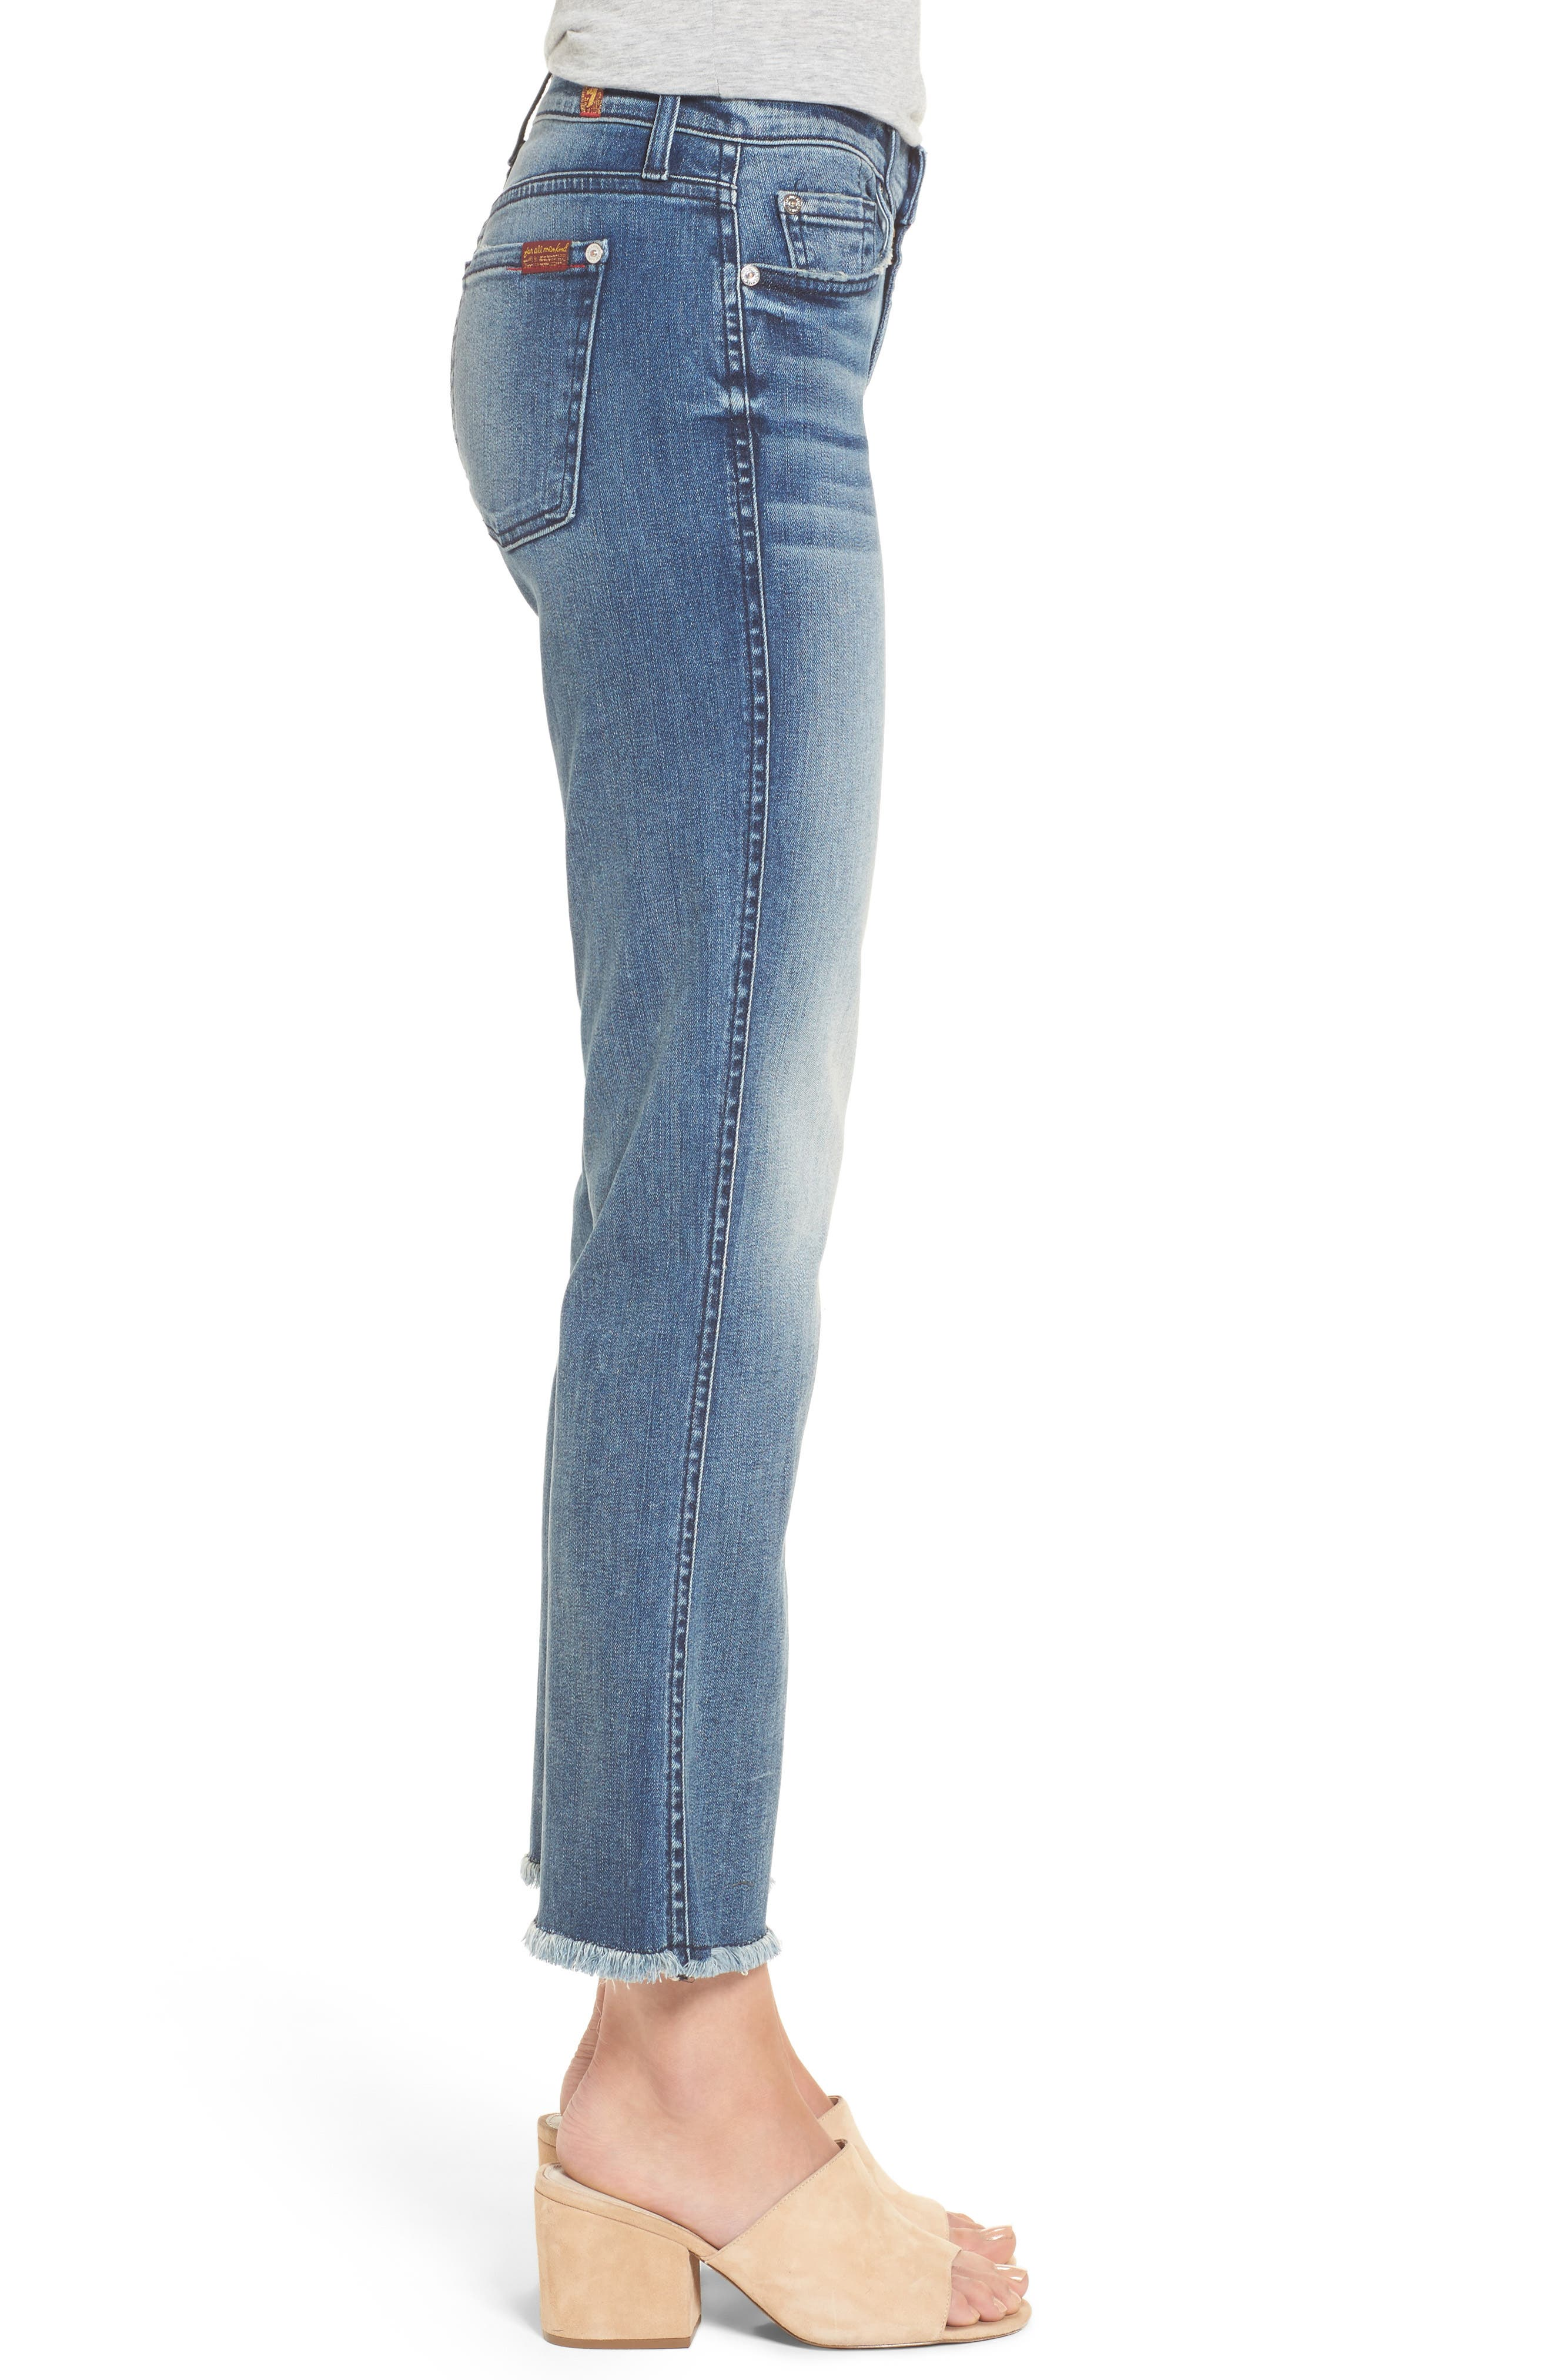 Alternate Image 3  - 7 For All Mankind® Crop Bootcut Jeans (Wall Street Heritage)